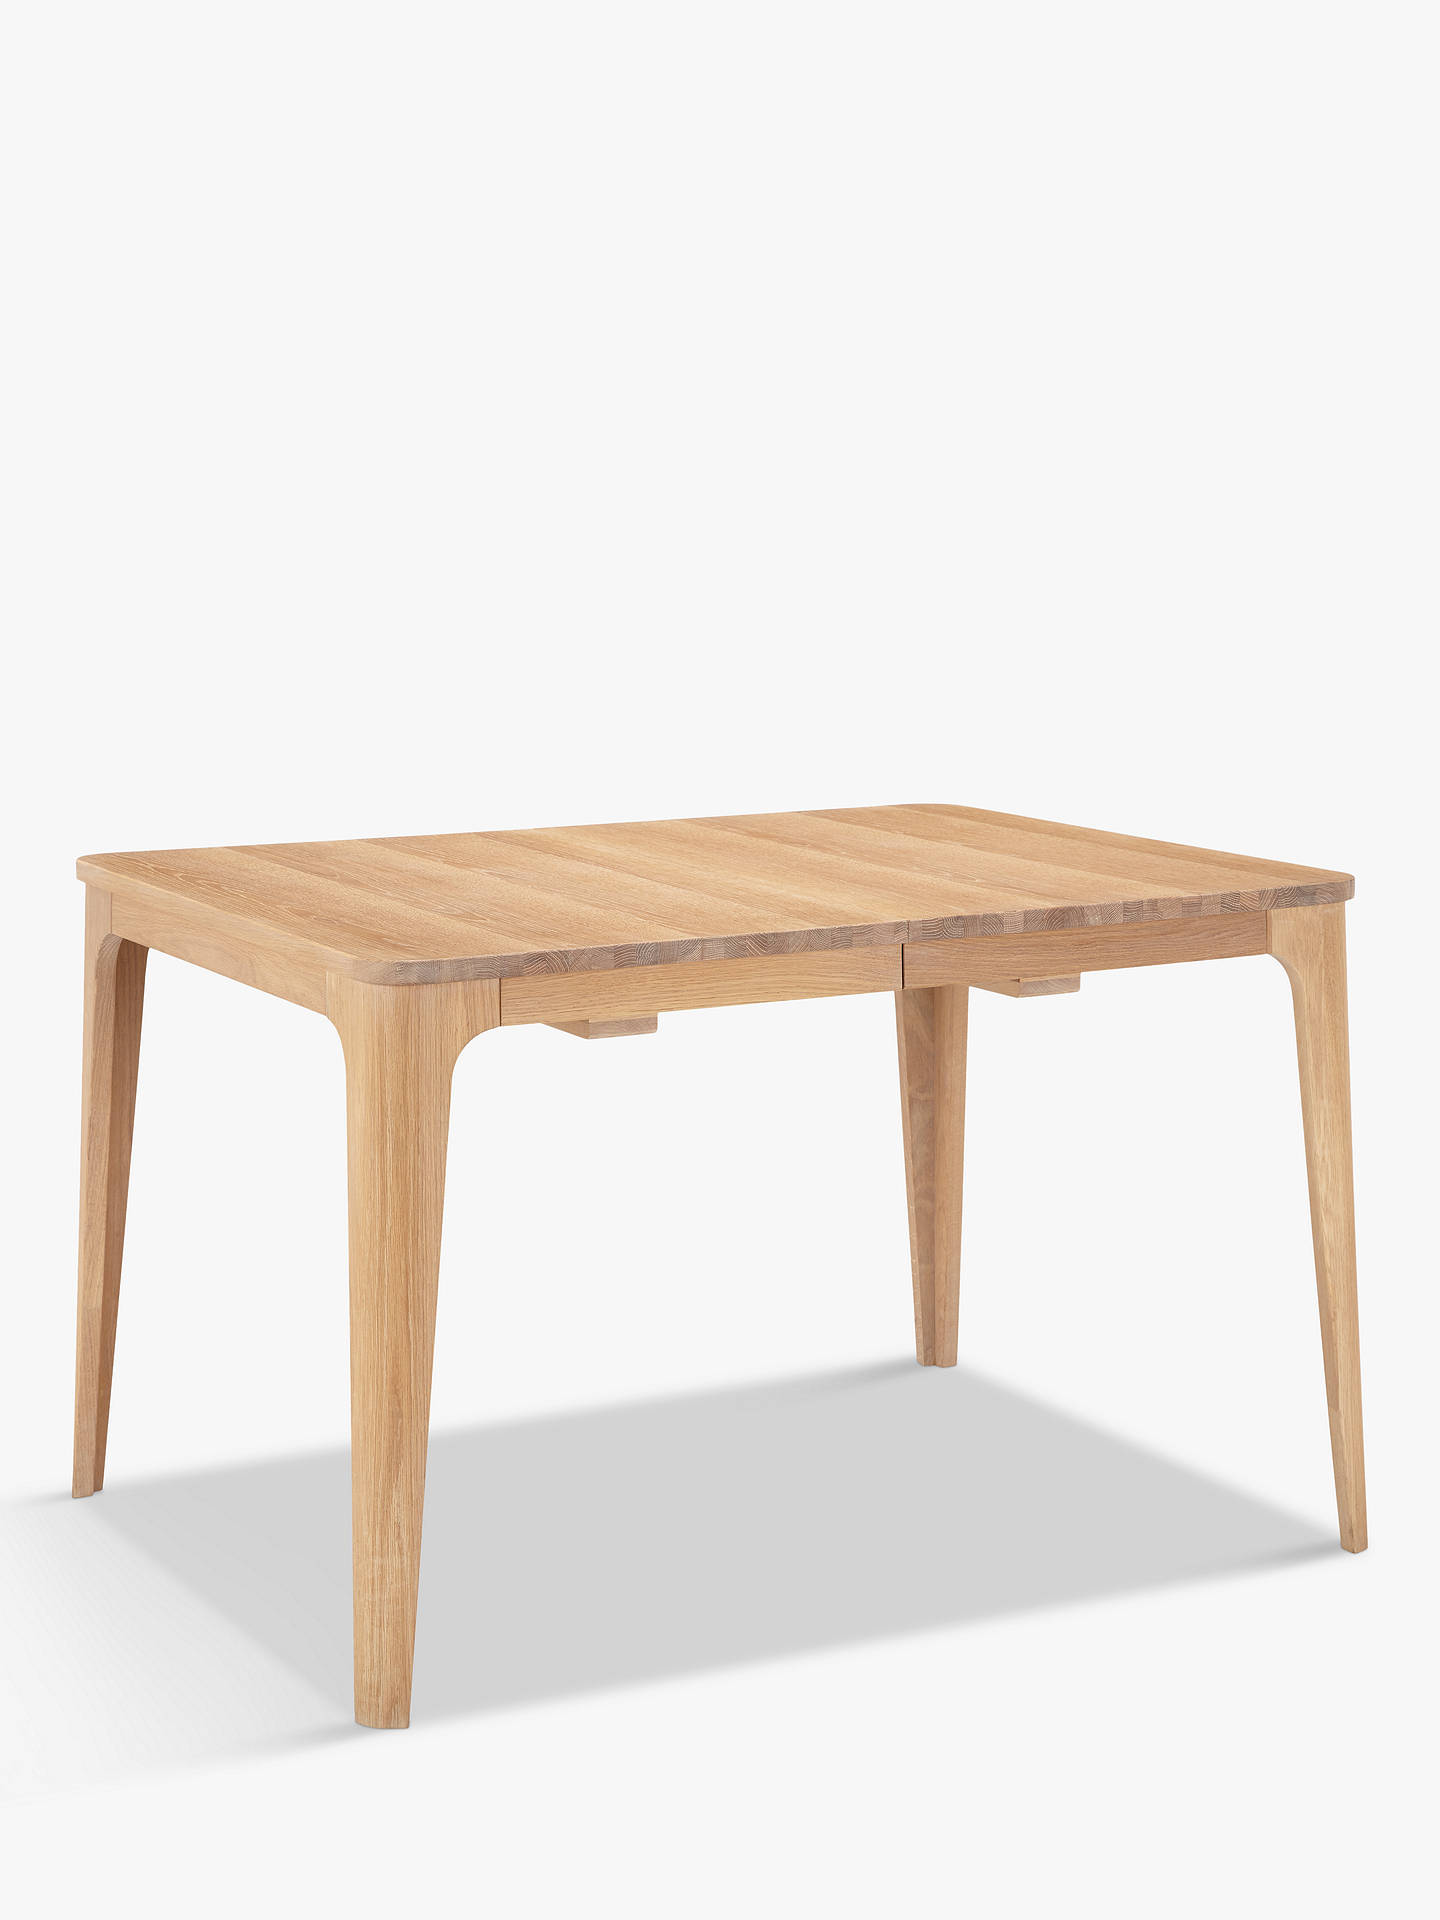 Buy Ebbe Gehl for John Lewis Mira 4-8 Seater Extending Dining Table, Natural Online at johnlewis.com